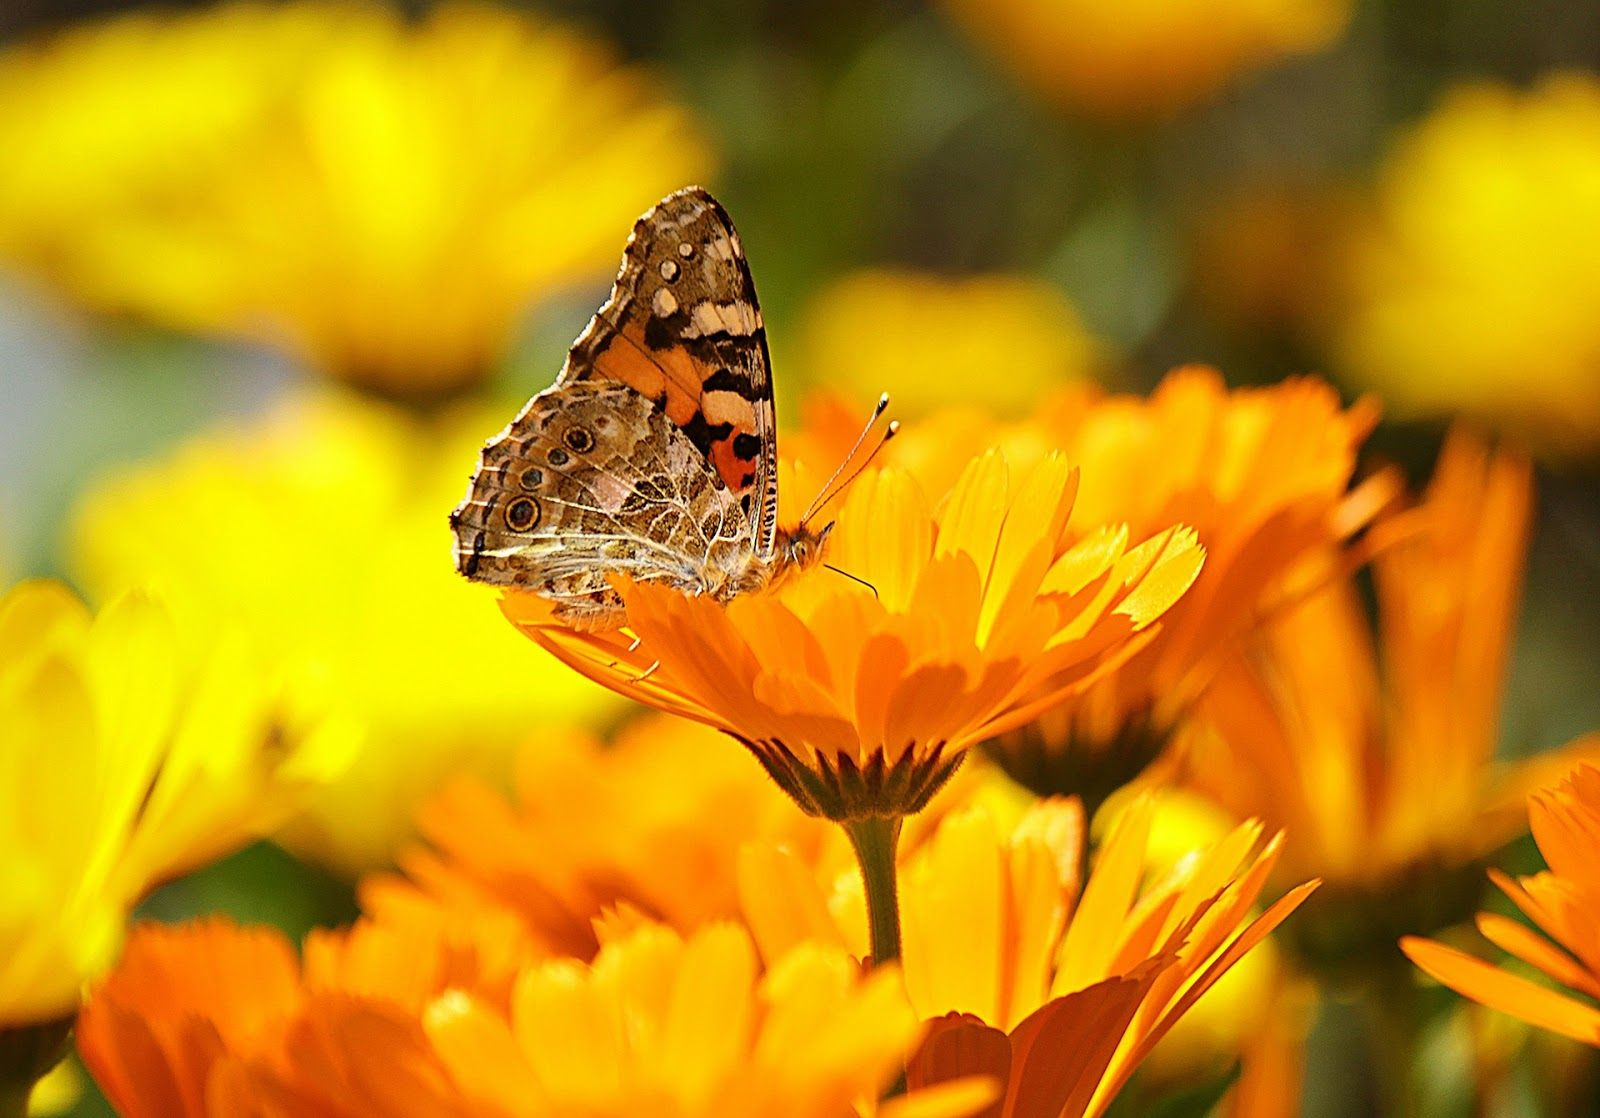 Medicinal plants and flowers to forage or grow on the homestead for your home apothecary! Calendula